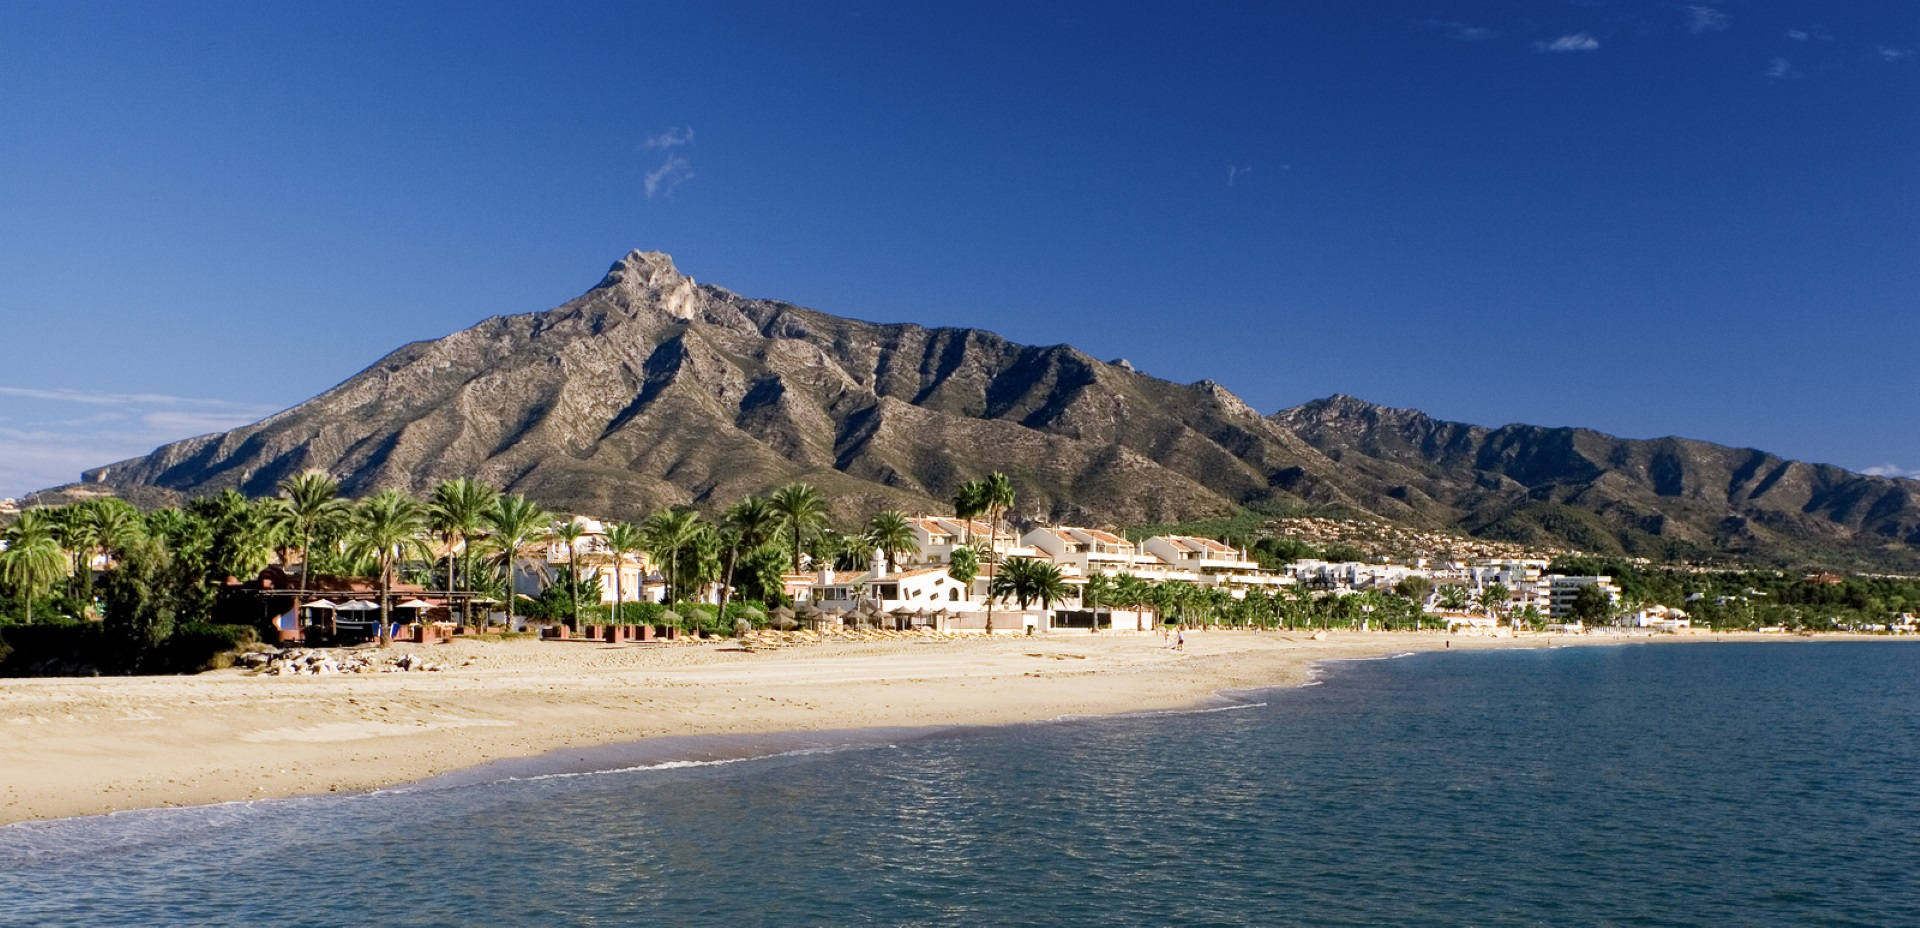 Marbella beachviews and Sierra Blanca